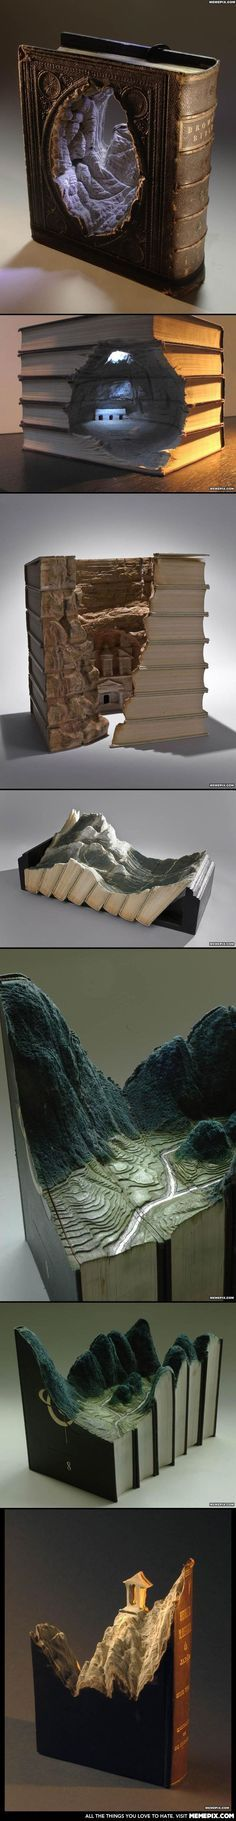 . Always best to never judge a book by its cover. Amazing landscapes carved into books